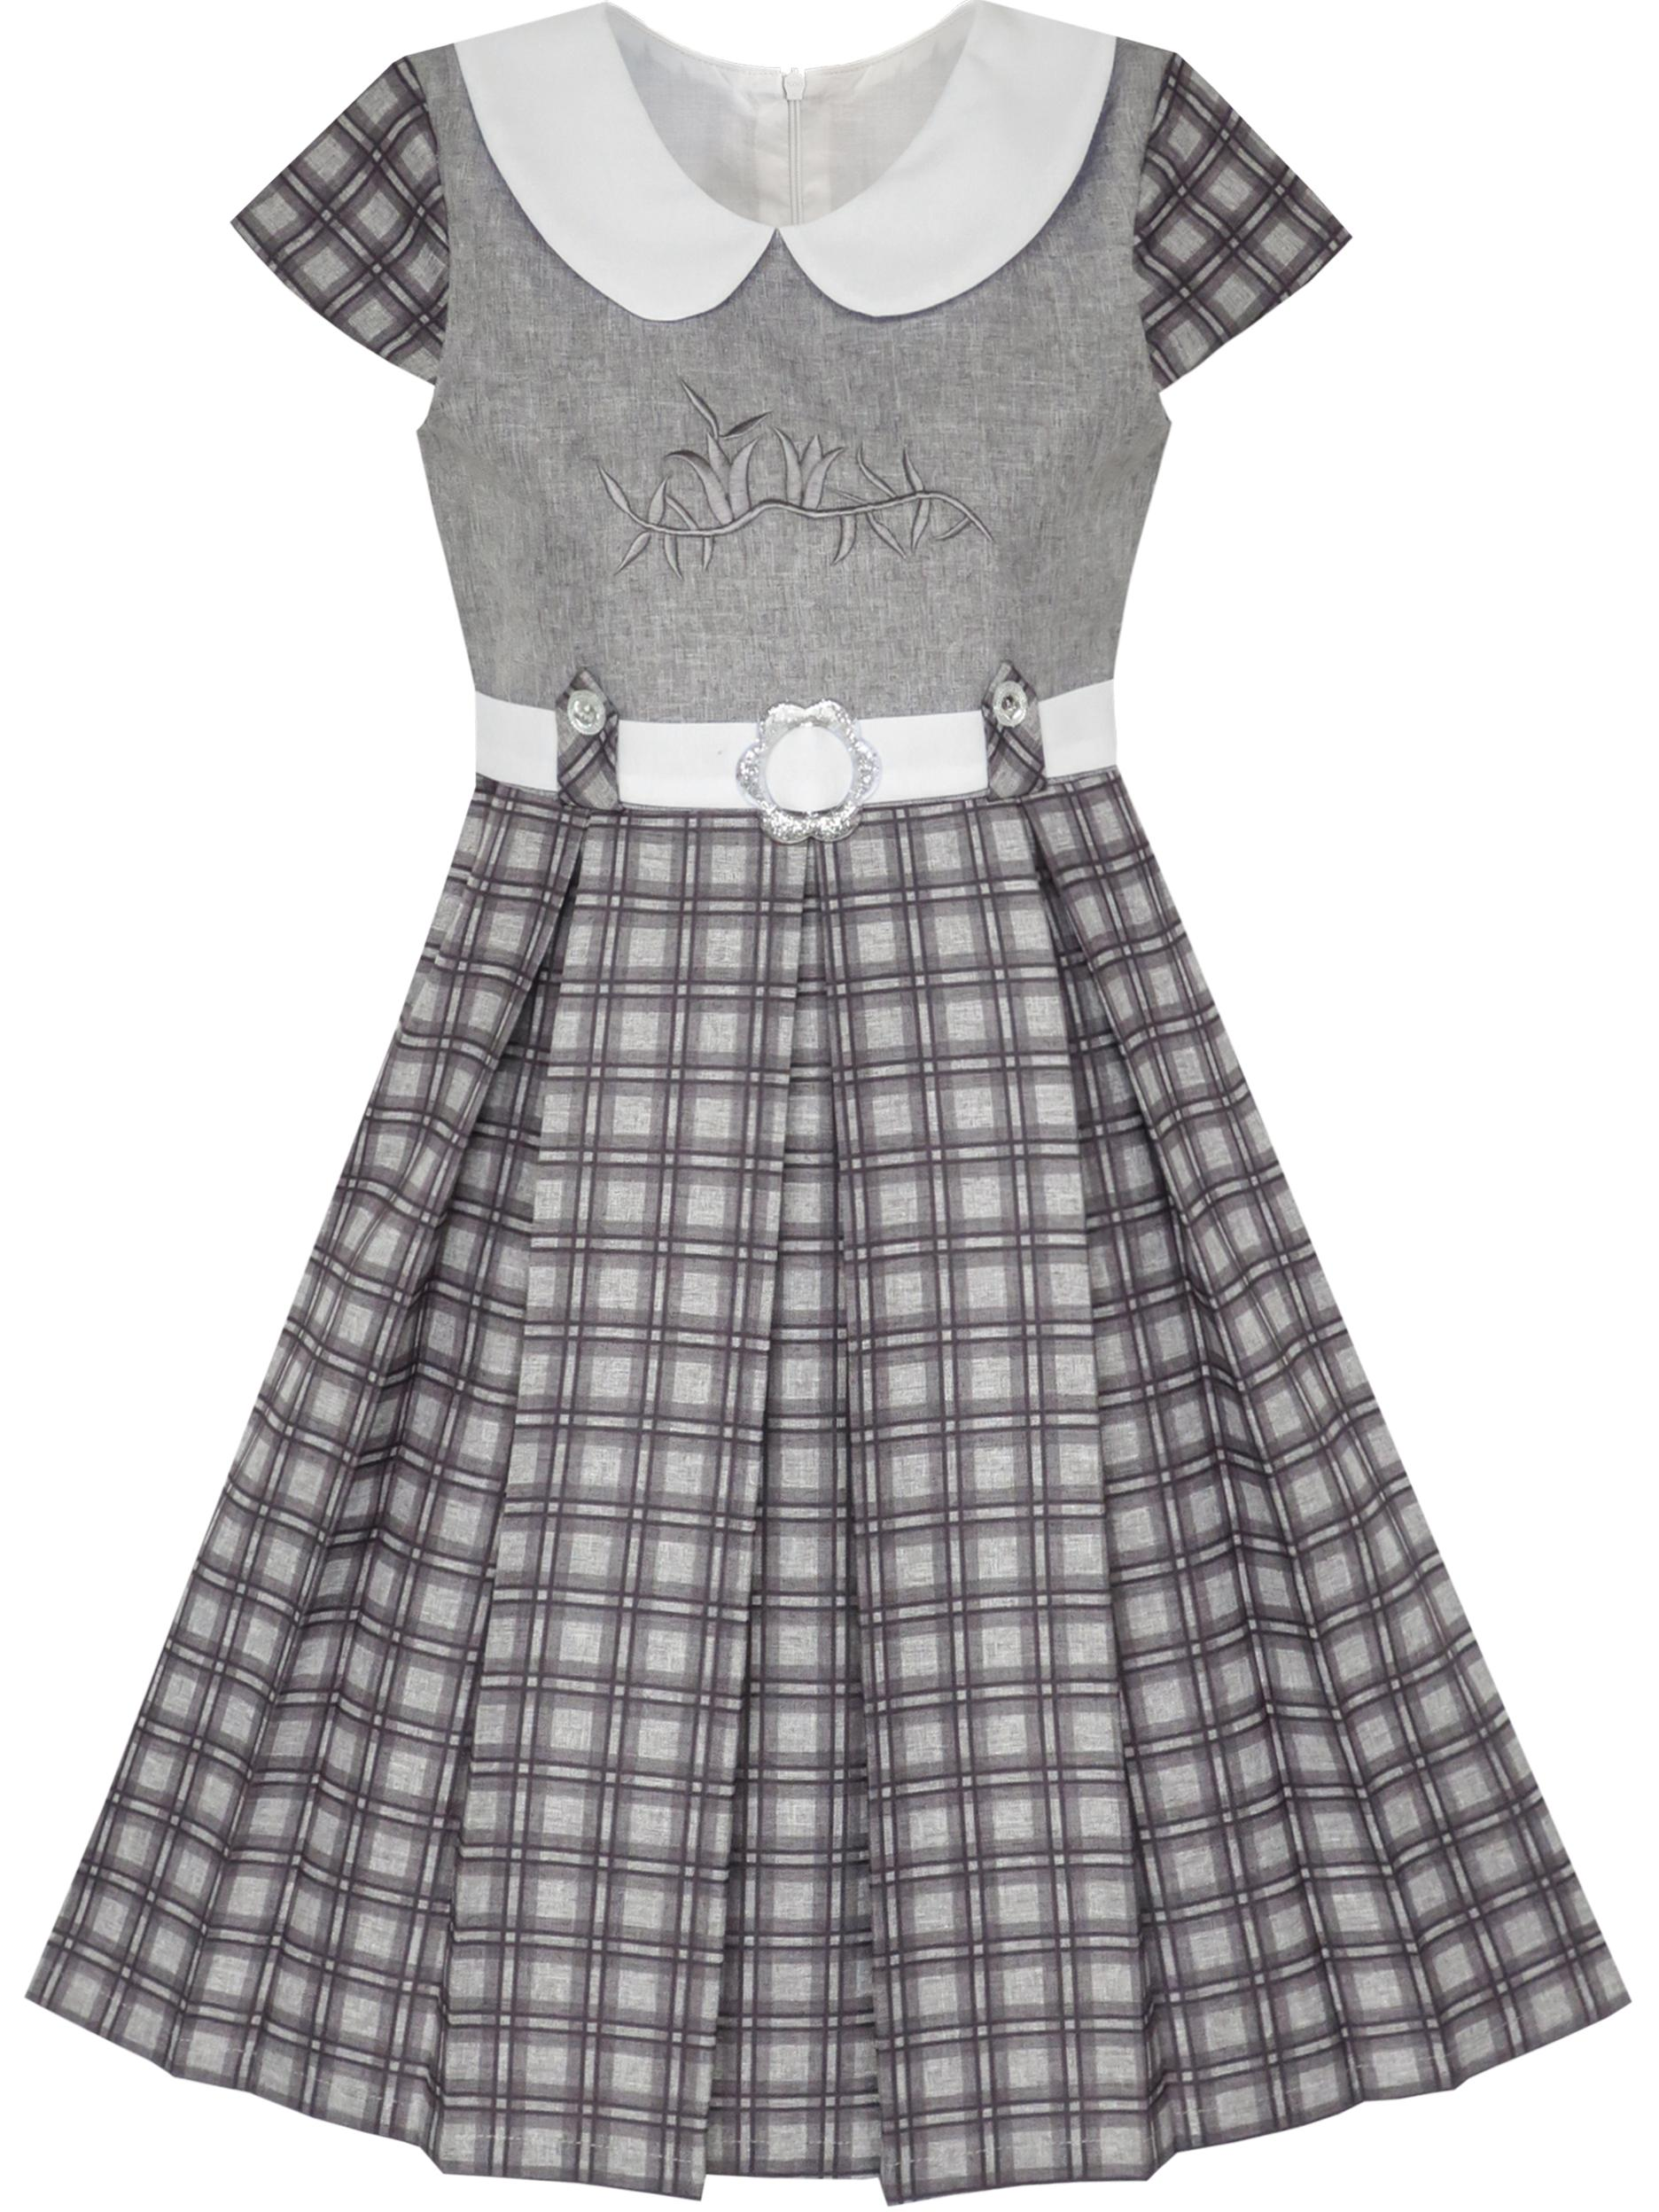 Girls Dress Pink Belted School Uniform Pleated Hem 4